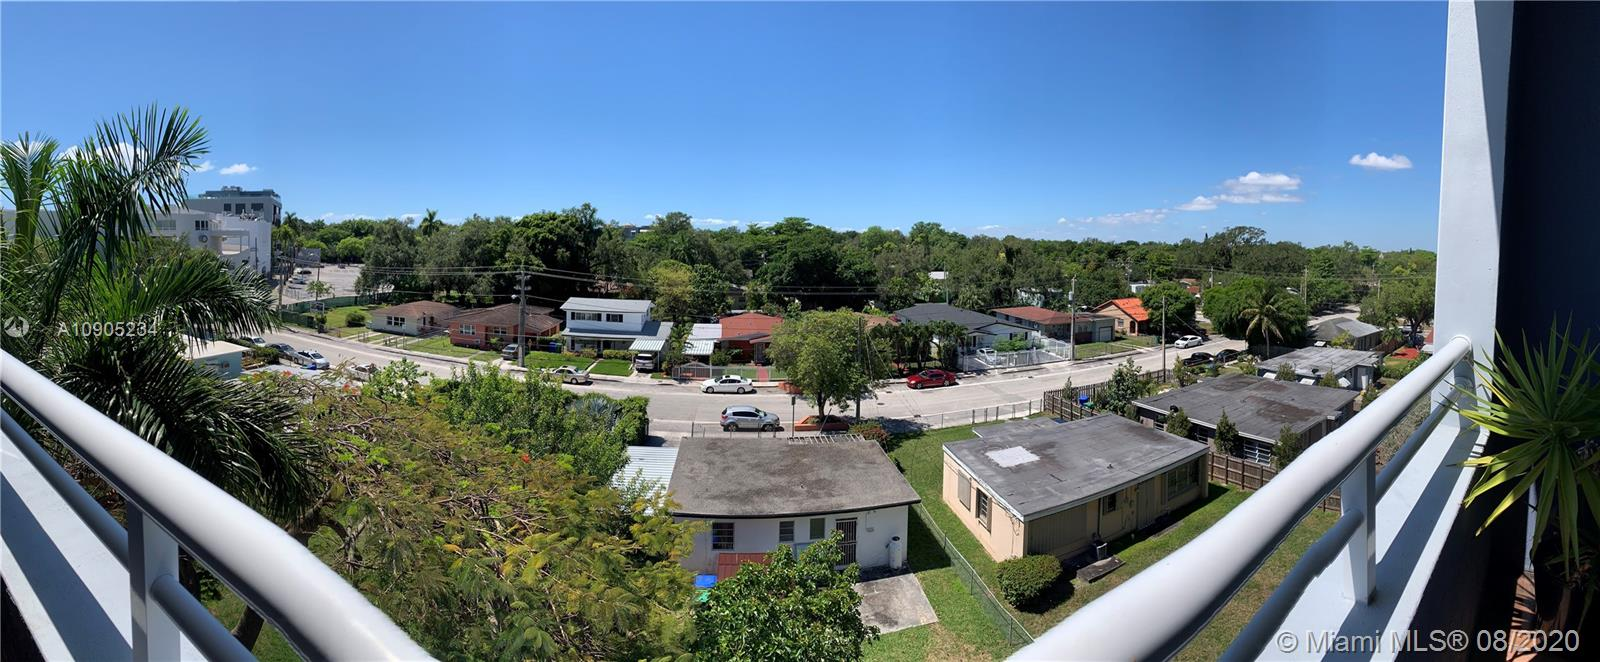 COCONUT GROVE IS MOST TRENDY OF ALL NEIGHBORHOODS, THIS IS SMALL BUILDING IS A GEM.LARGE ONE BEDROOM, WITH TWO FULL BATH, LARGE WALK IN CLOSET THAT YOU CAN TRANSFORM IN A SMALL OFFICE, ADDITIONAL CUSTOM MADE CLOSET WITH LIGHTS AND MODERN FINISHES, GREAT BALCONY WITH OPEN CITY VIEWS. UPDATED KITCHEN WITH STAINLESS STEEL APPLIANCES. UNIT HAS COVERED PARKING SPACE AND ROOF DECK HAS A GREAT POOL AND LARGE LOUNGE AREA. BUILDING IS PET FRIENDLY , INTERNET CABLE AND WATER ARE INCLUDED. EASY TO SHOW AND VACANT. GREAT PLACE TO LIVE OR TO INVEST** Building allows short term rentals***